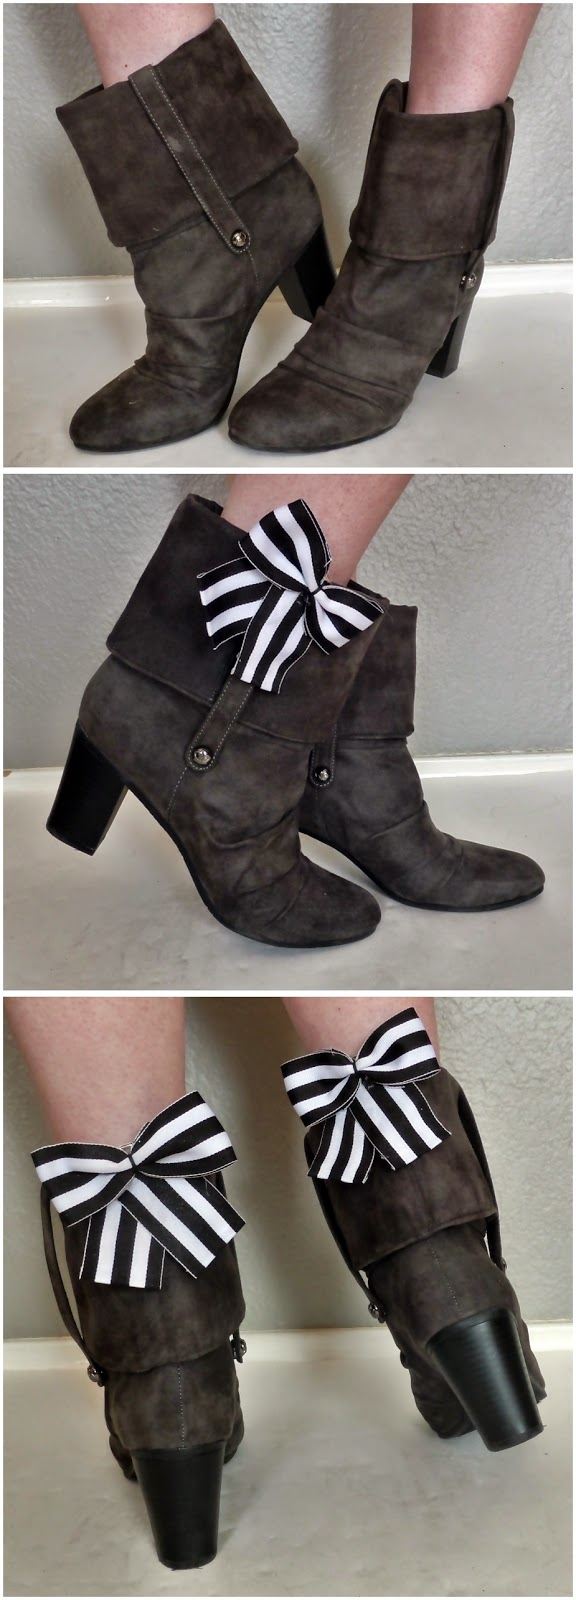 Clip on bows for shoes